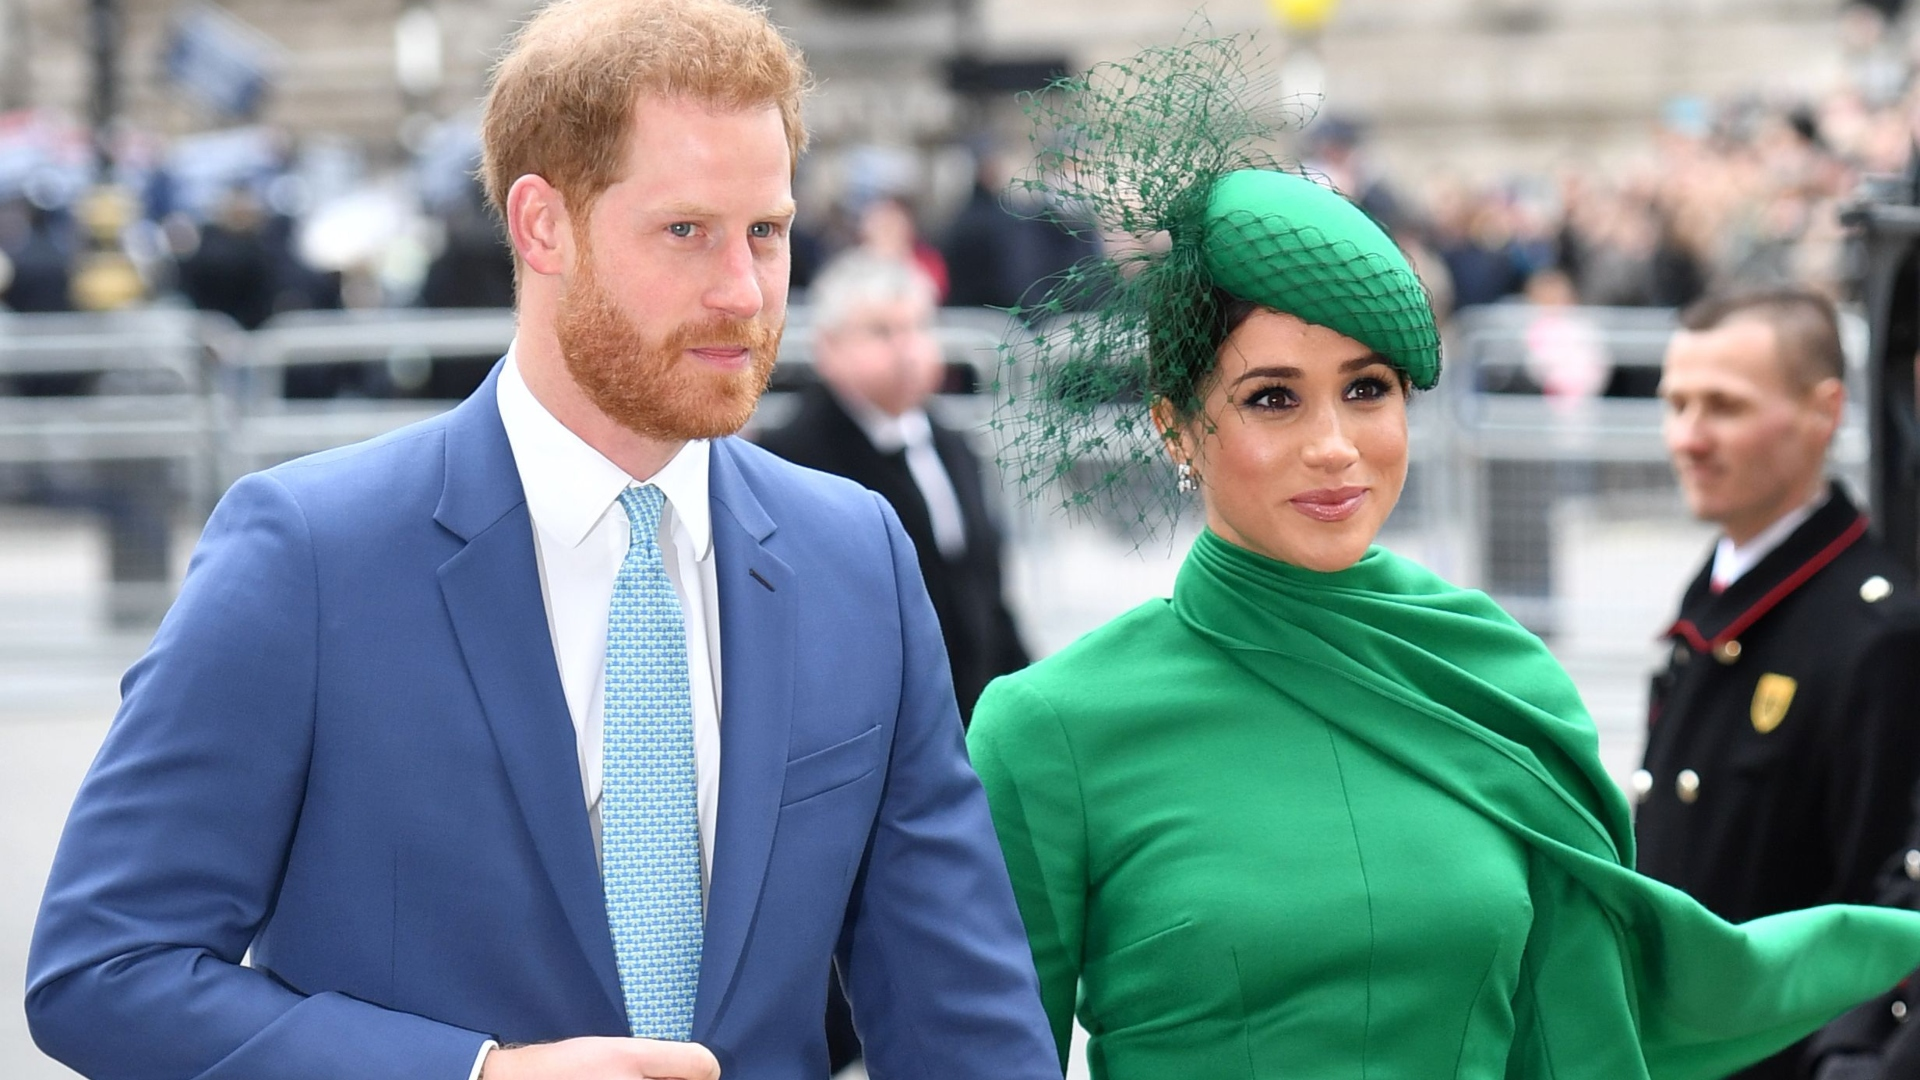 did prince harry meghan markle make their last appearance as royals sheknows did prince harry meghan markle make